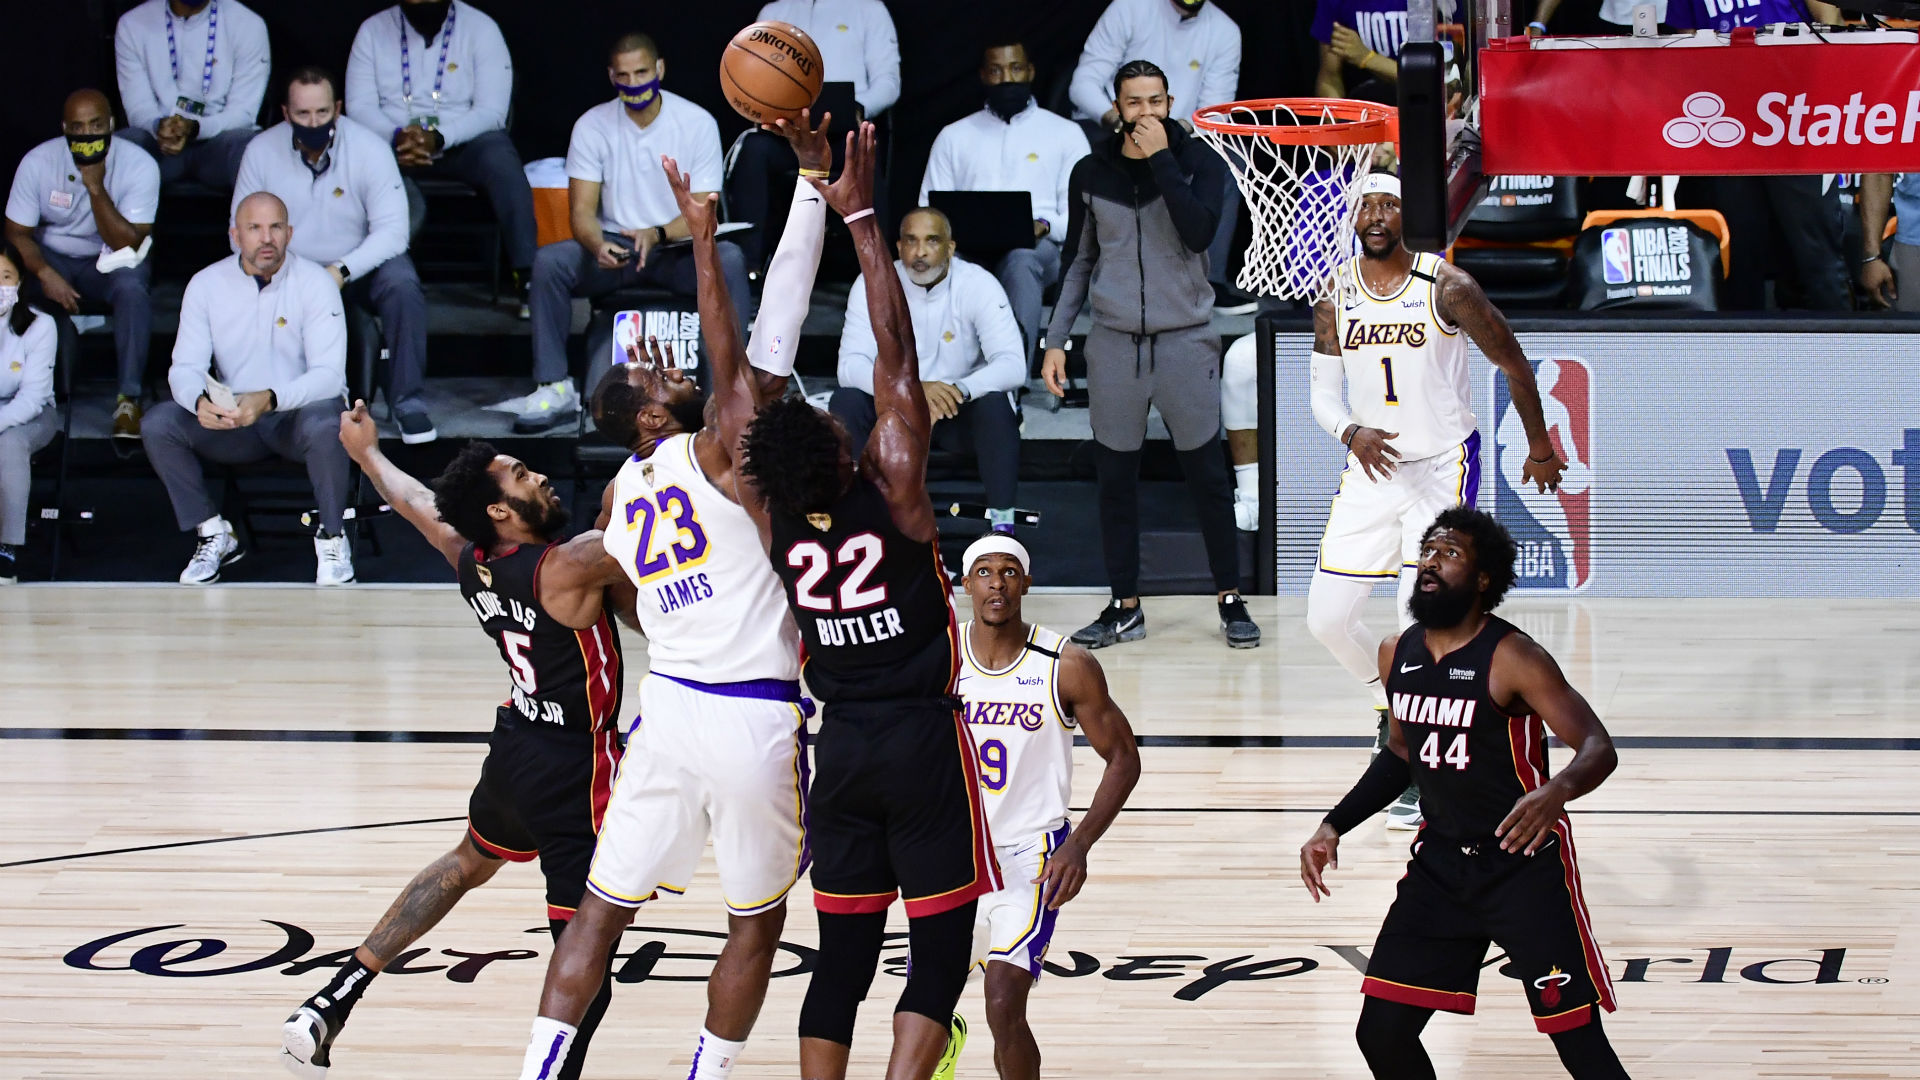 Lakers vs. Heat live score, updates, highlights from Game 5 of the 2020 NBA Finals 1